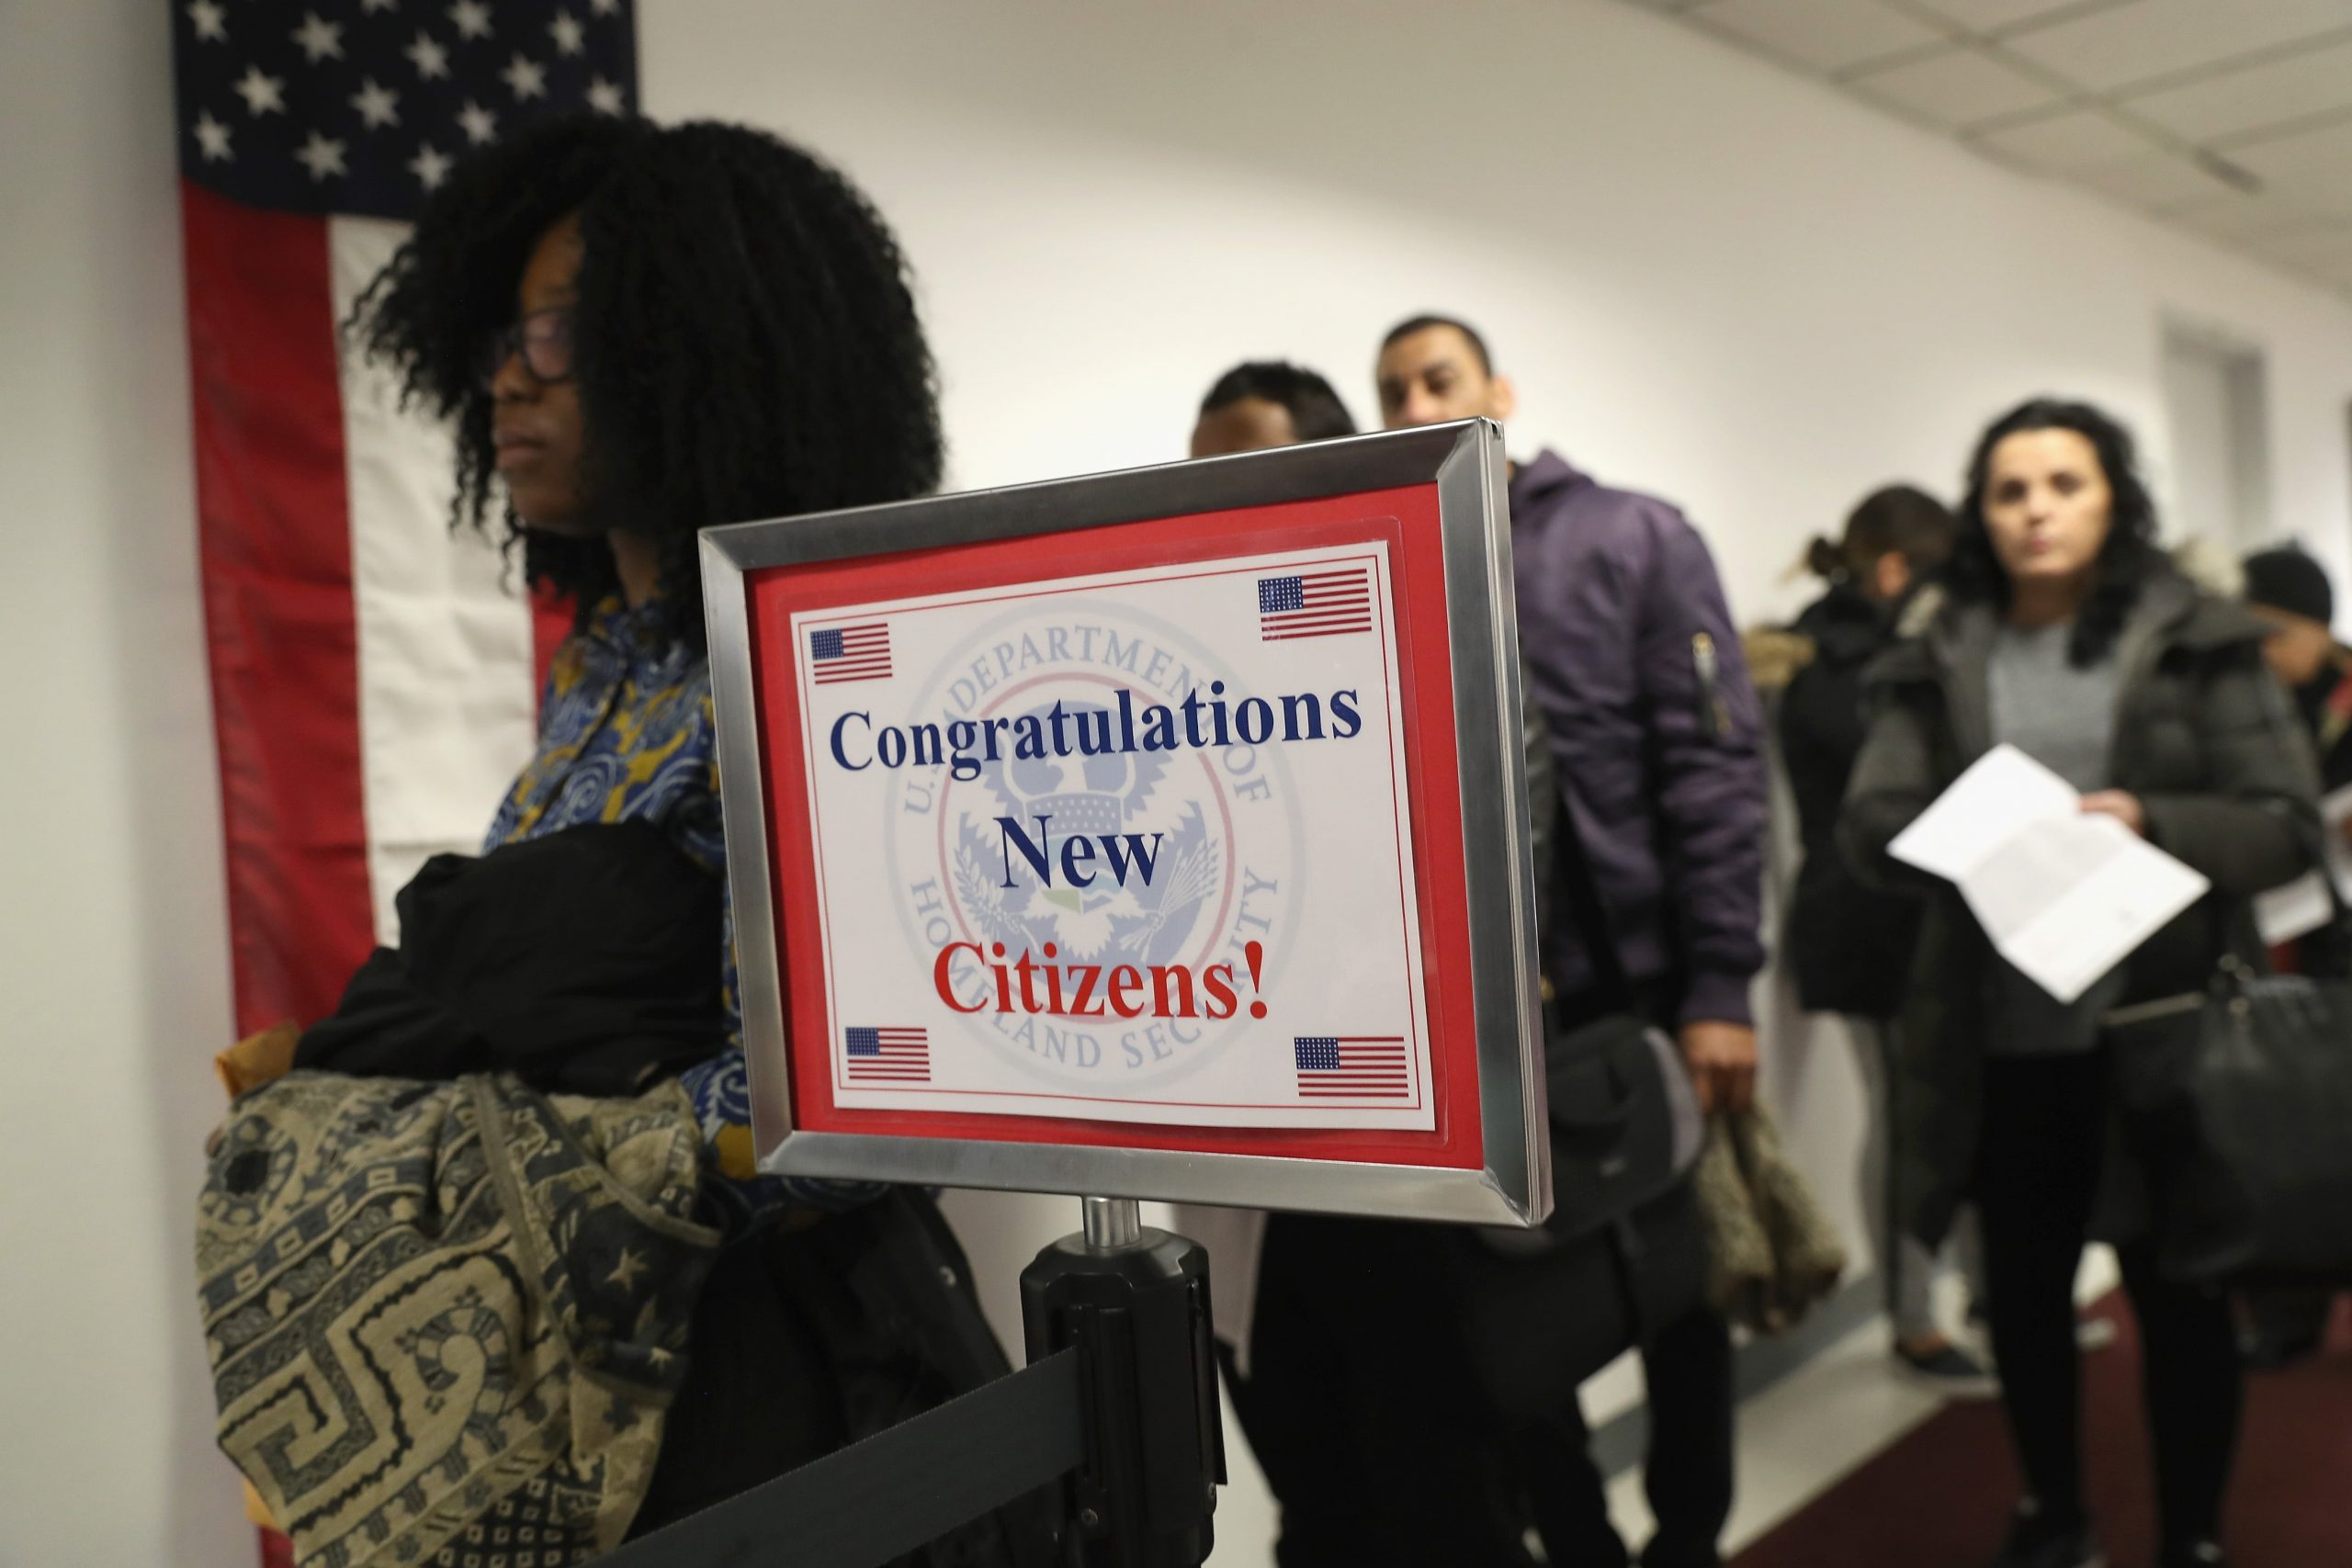 Congratulations New Citizens